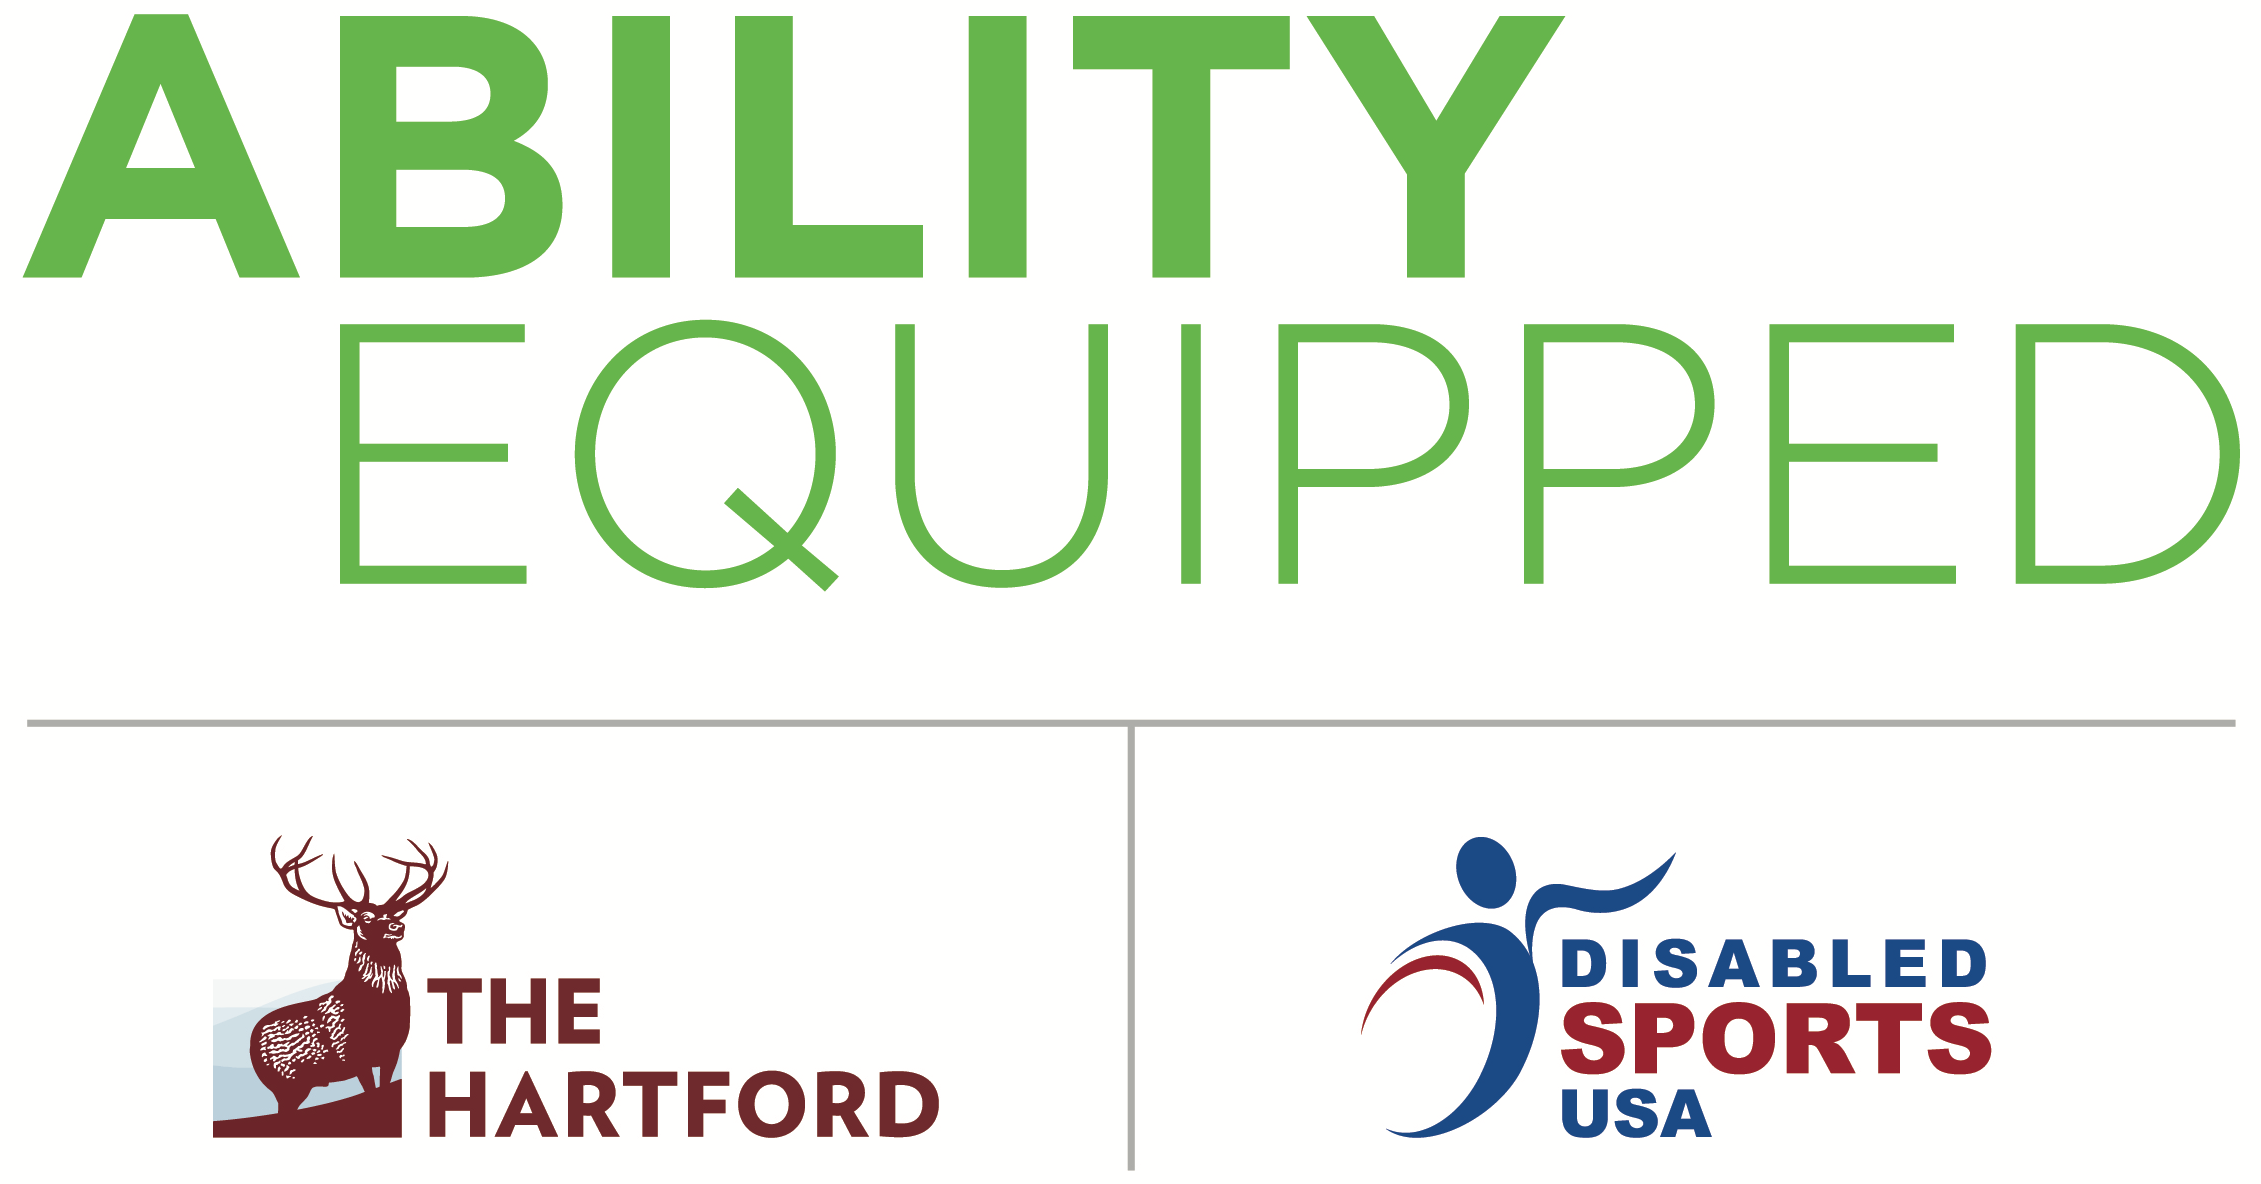 The Hartford Ability Equipped